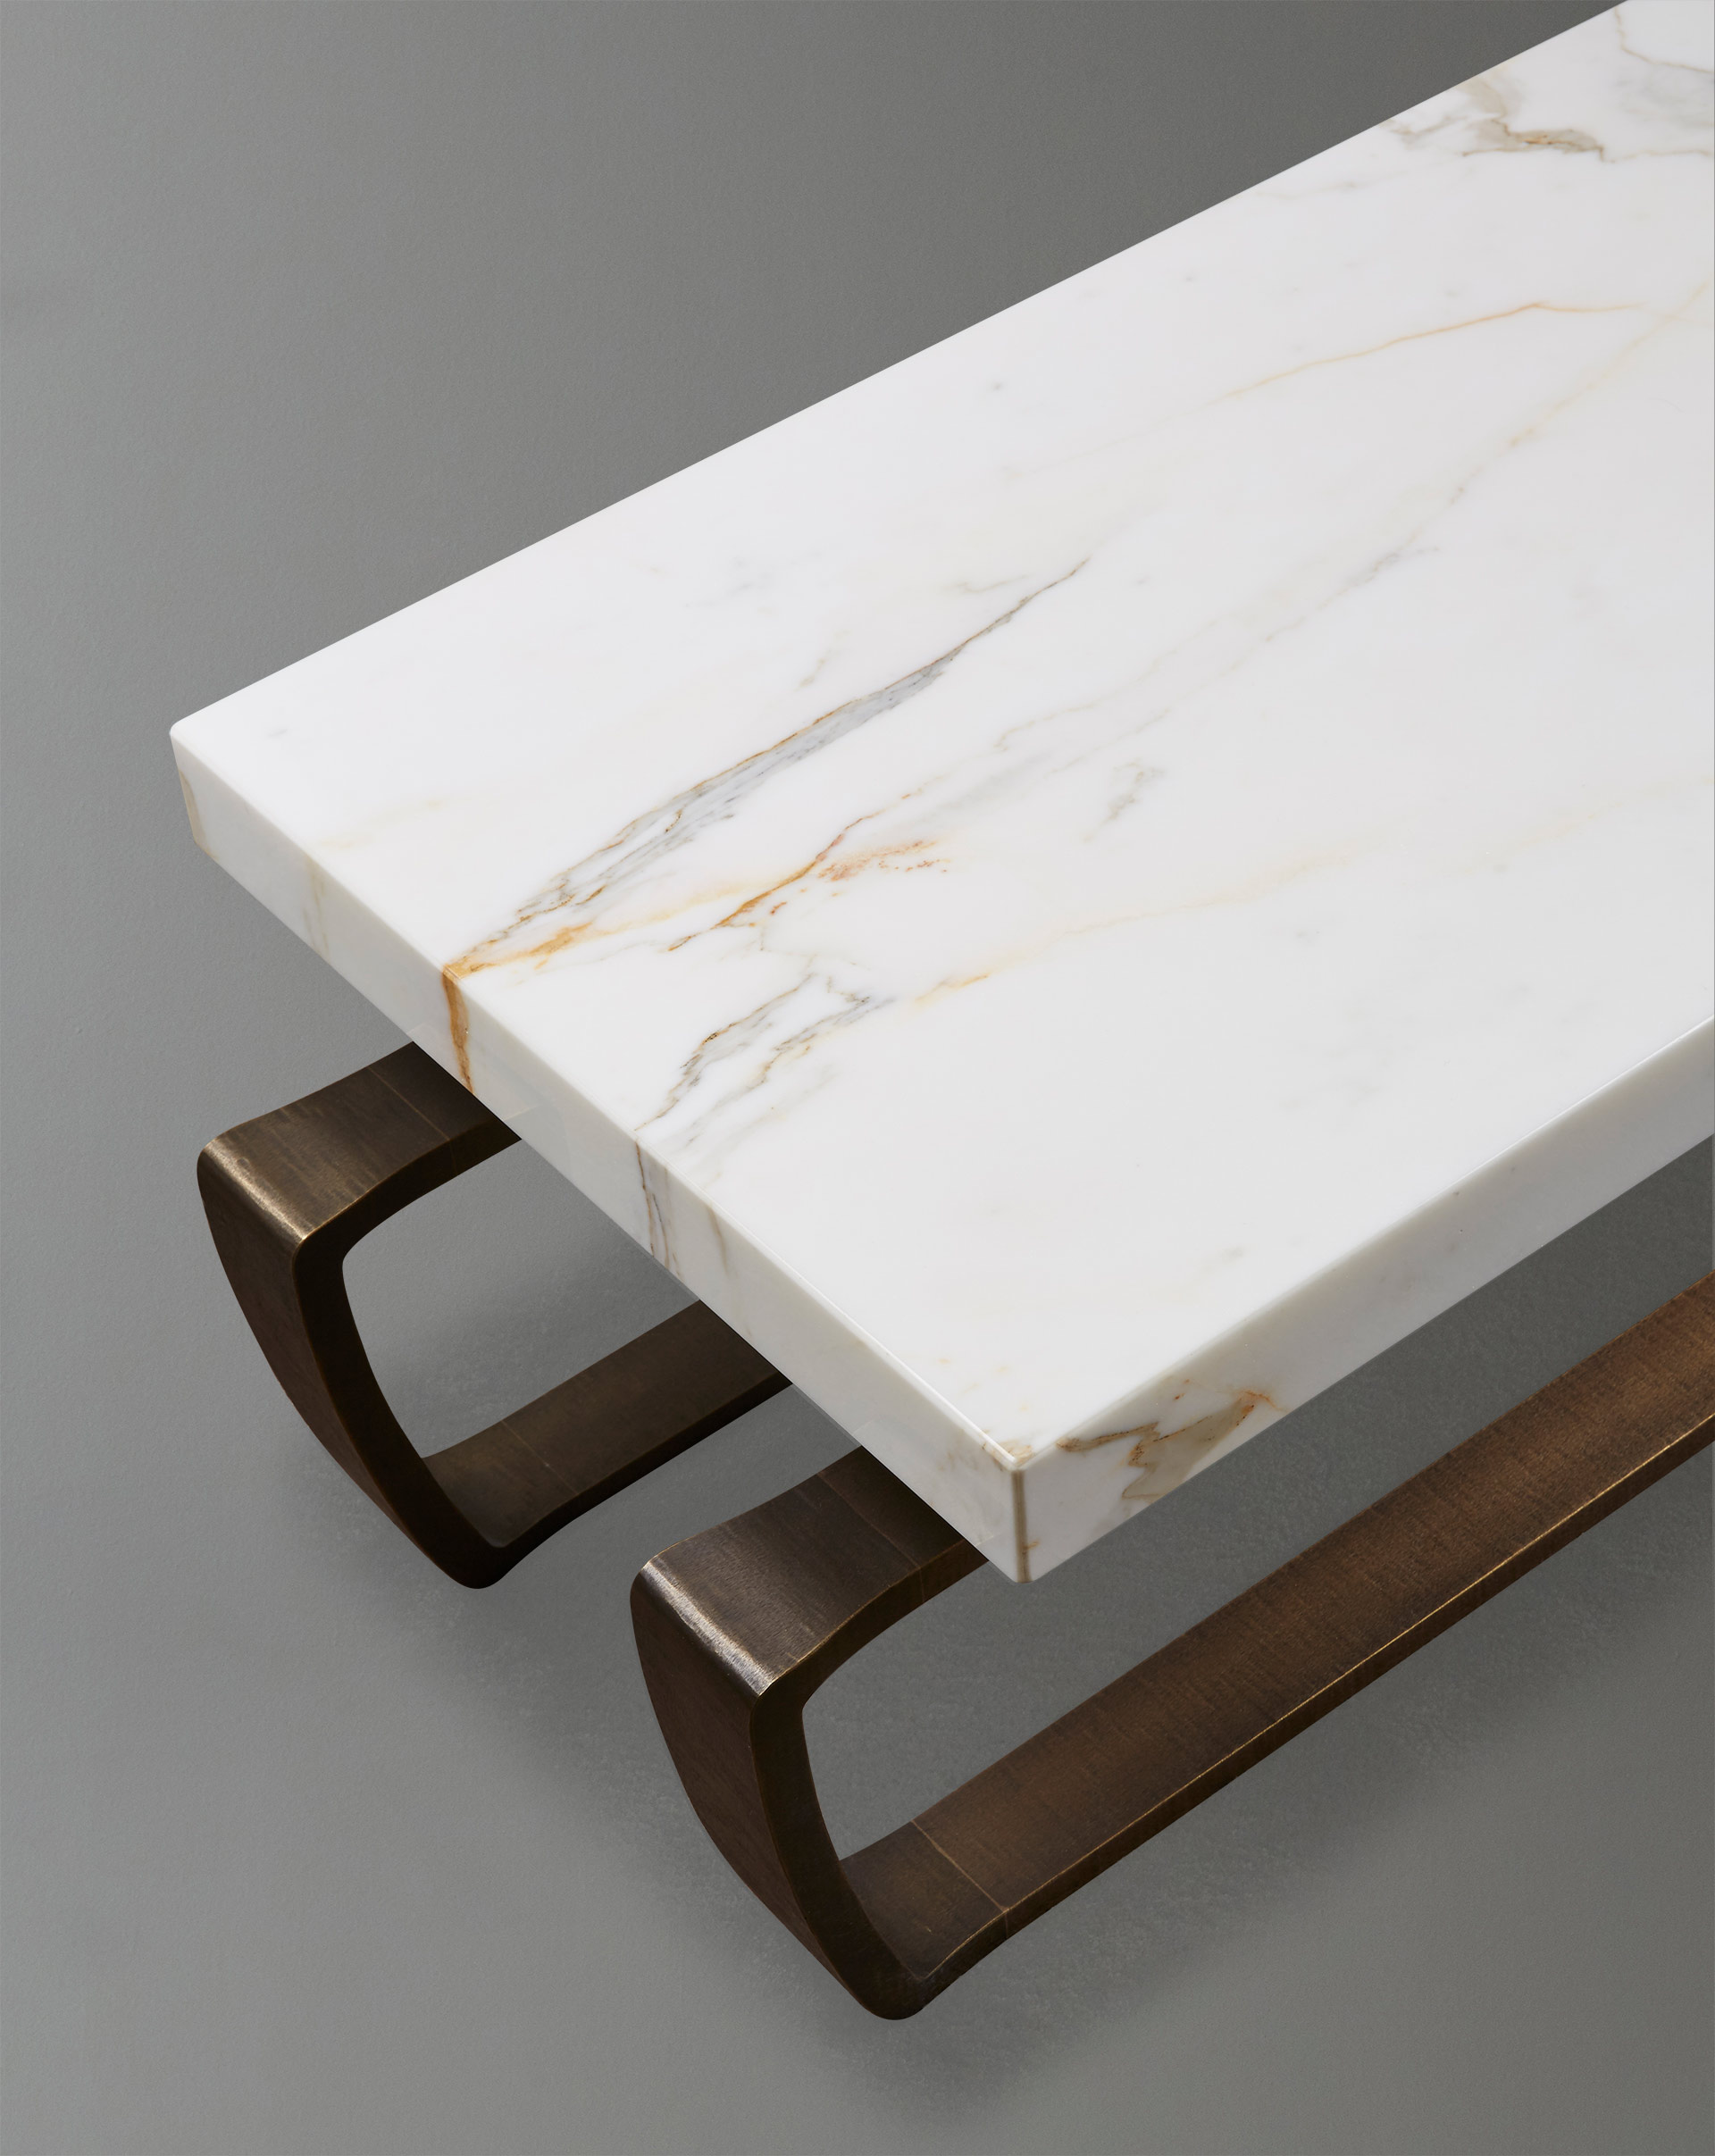 Marble top detail of Saint Moritz, a coffee table with a bronze base, from Promemoria's catalogue | Promemoria